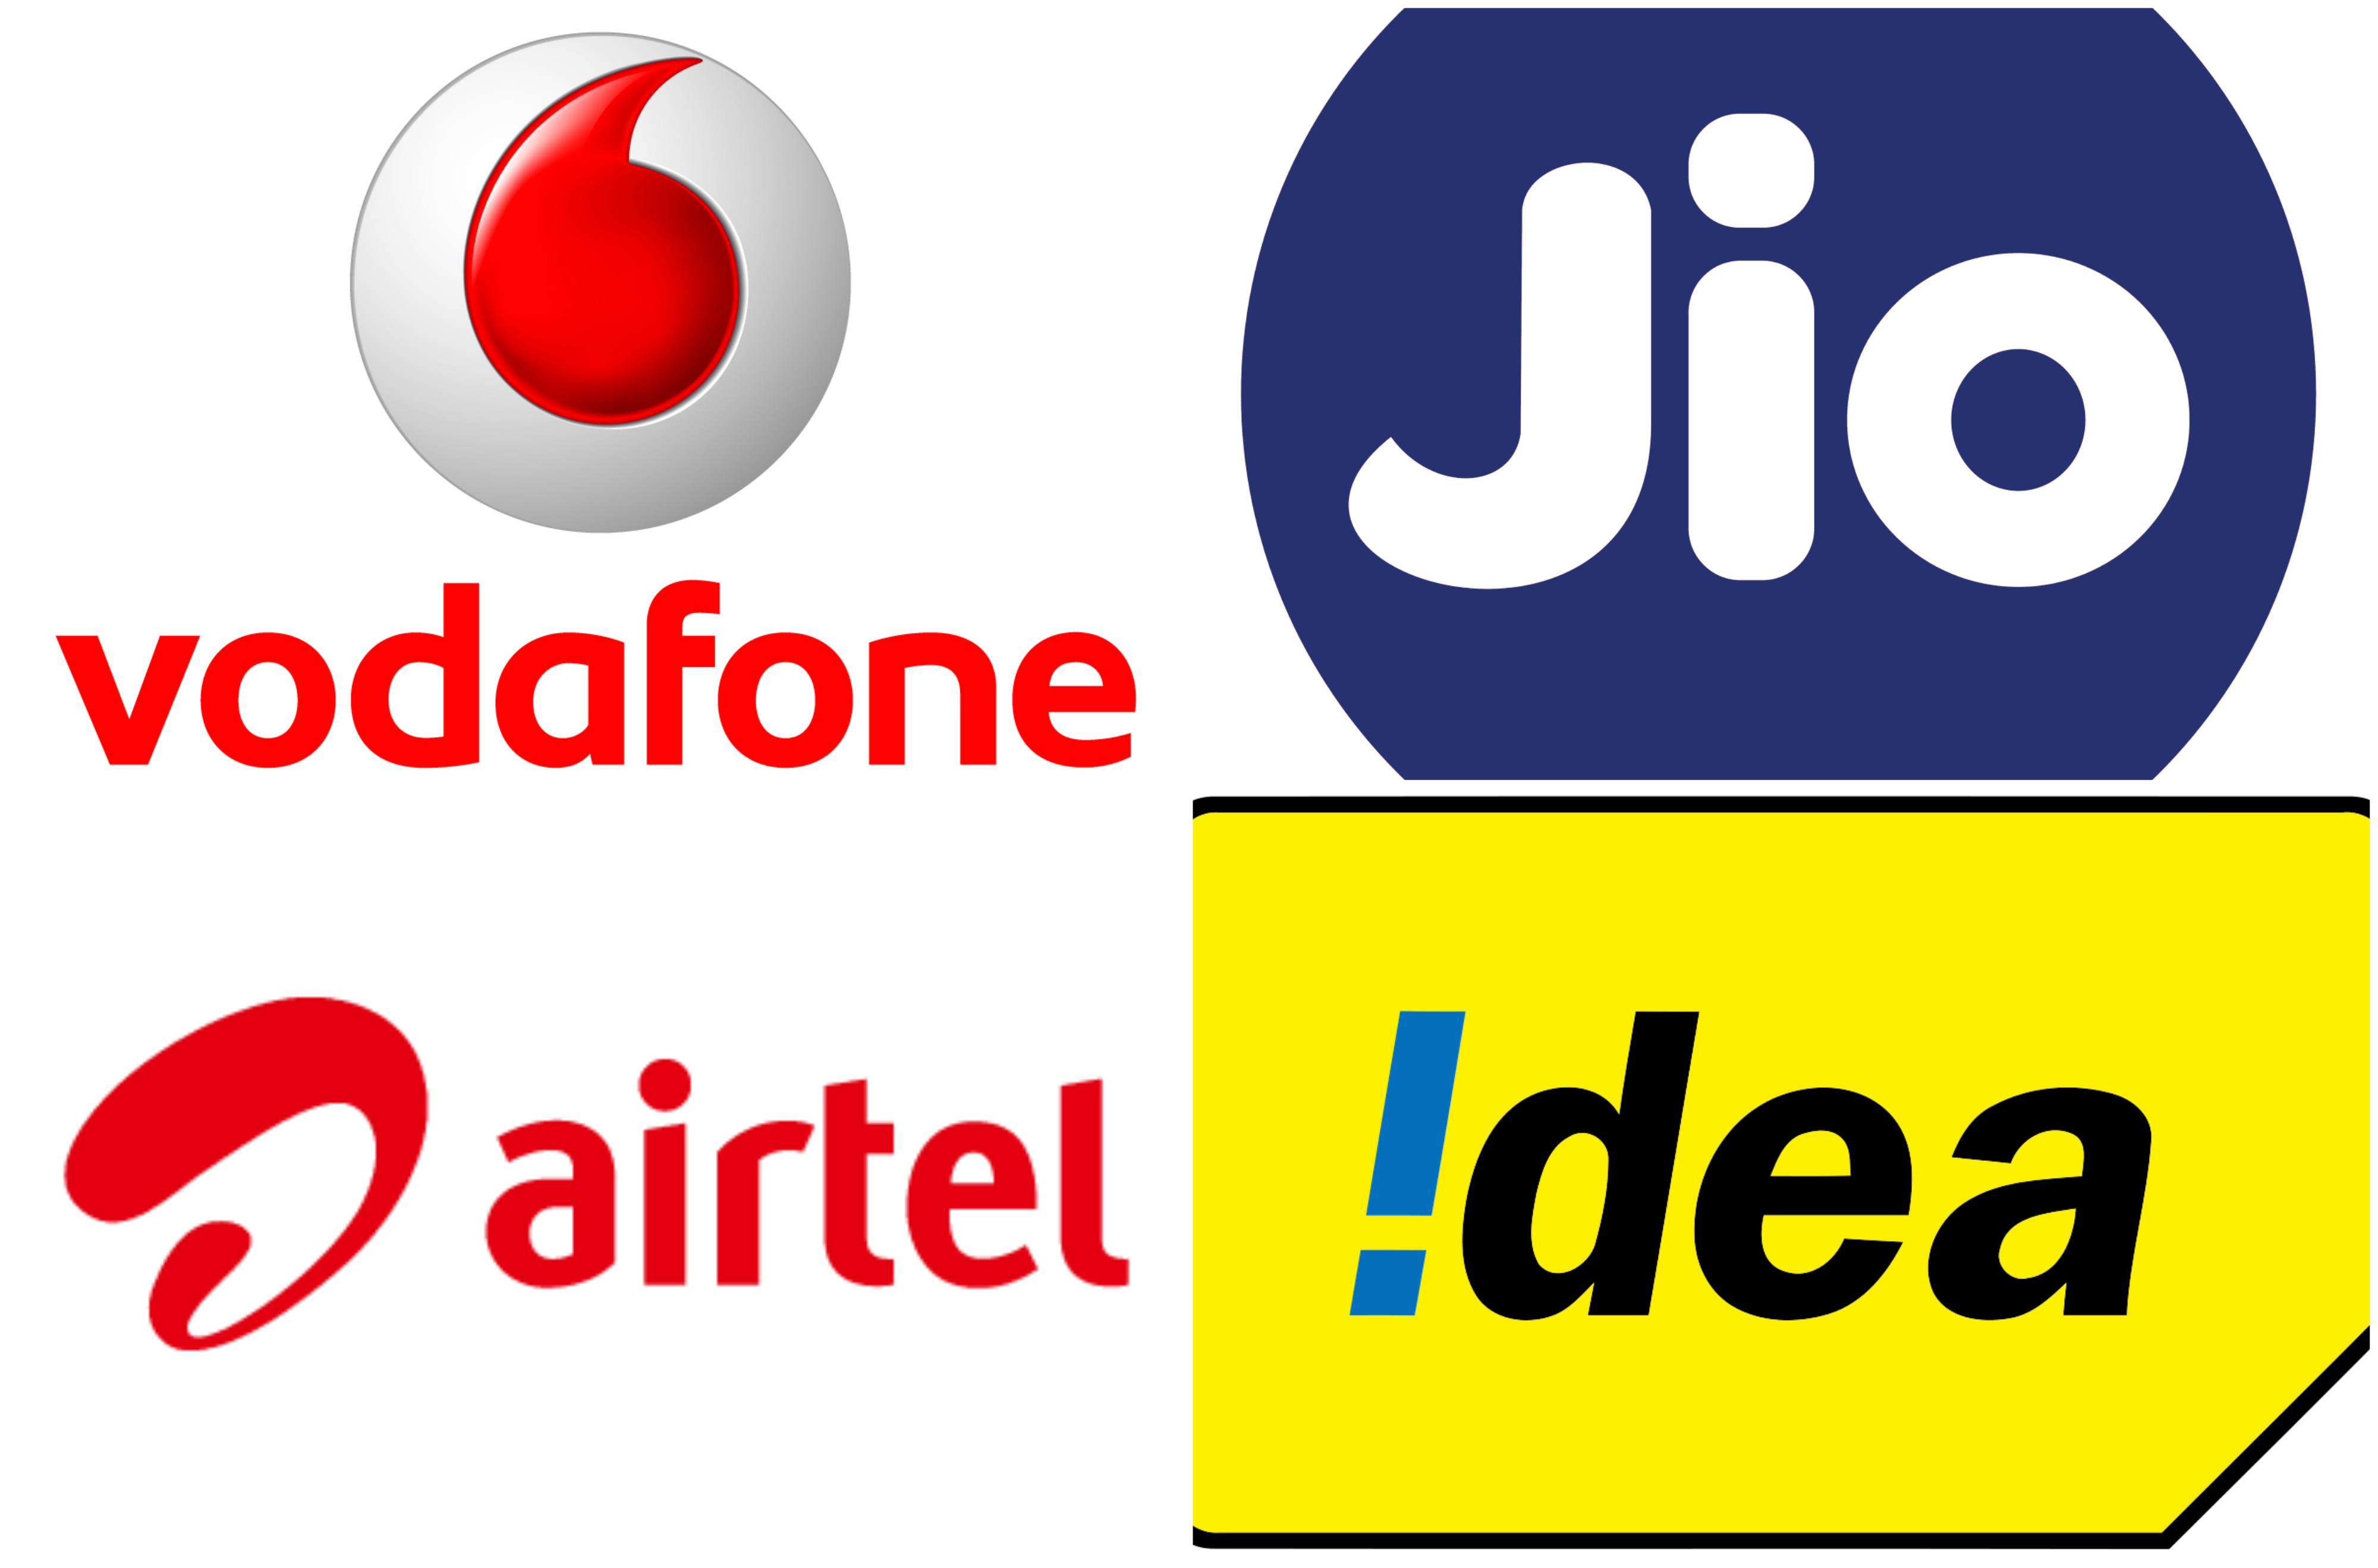 vodafone vs airtel Which network, among vodafone and airtel provide fast and stable 3g internet/network in mumbai circle(esp kalyan/dombivali.